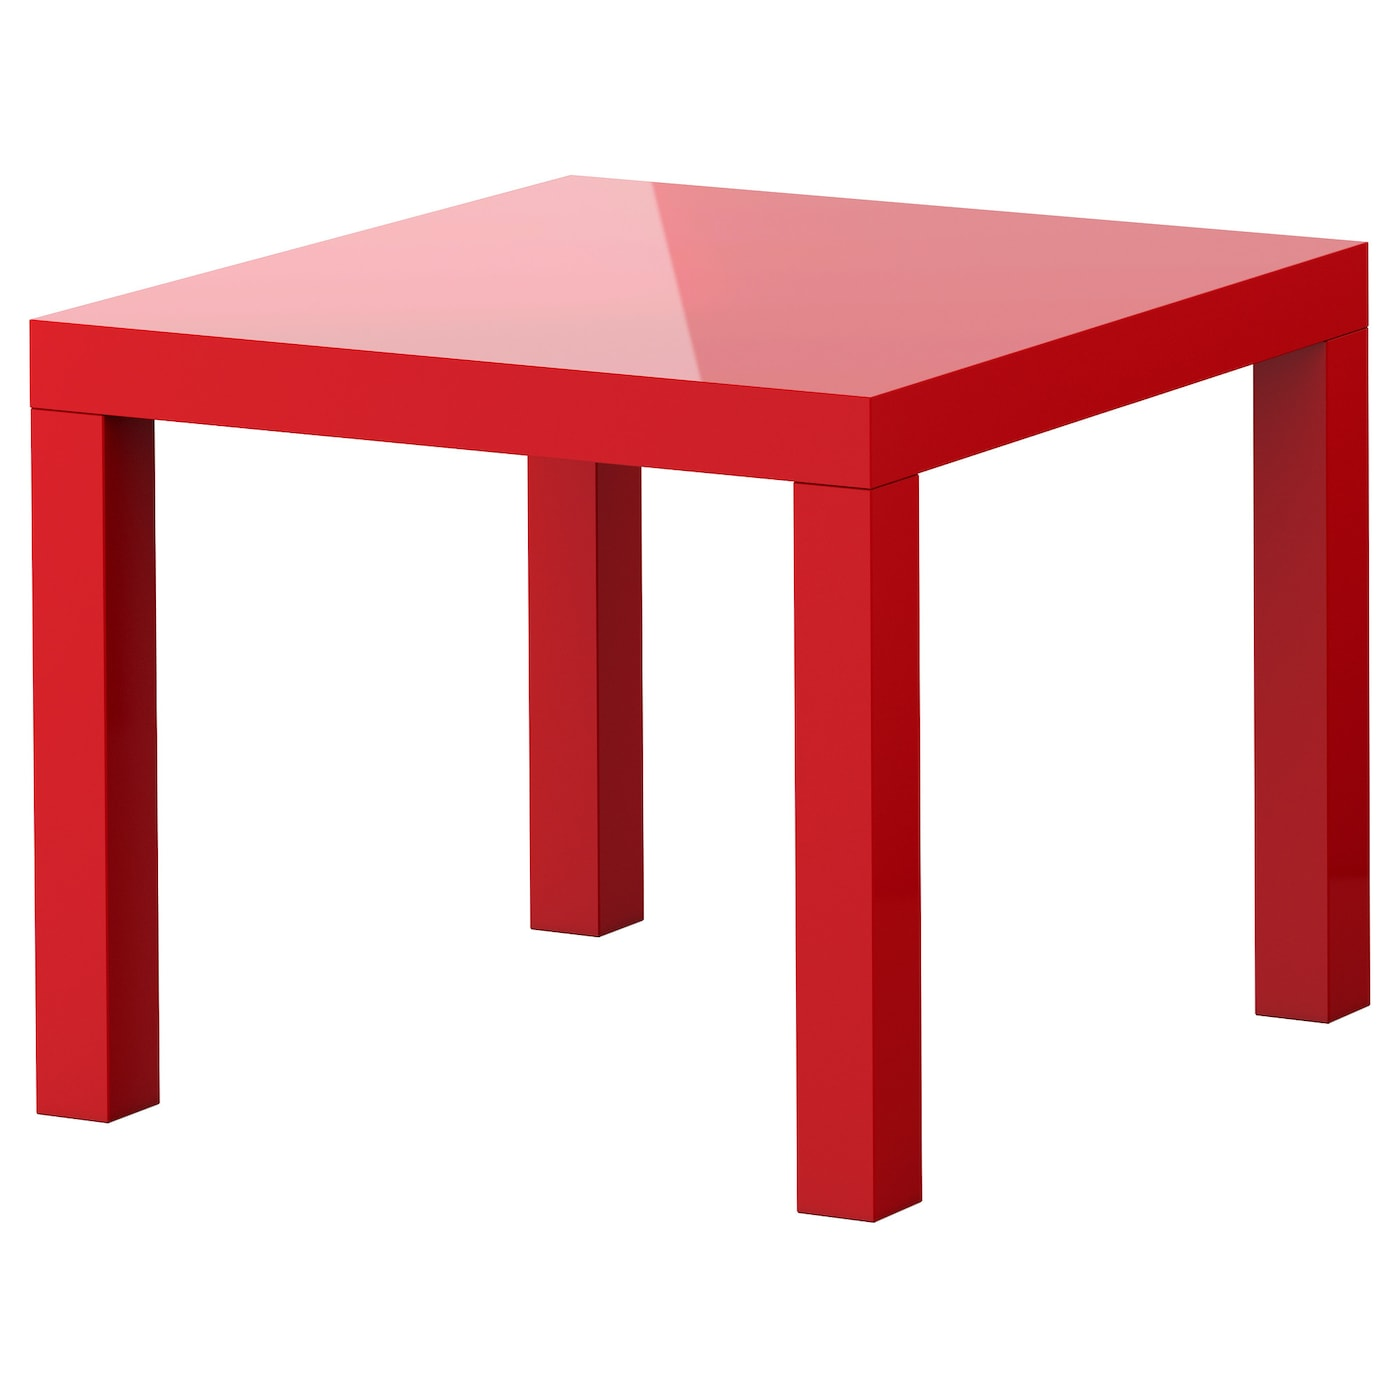 Lack side table high gloss red 55x55 cm ikea for Table de fusion ikea